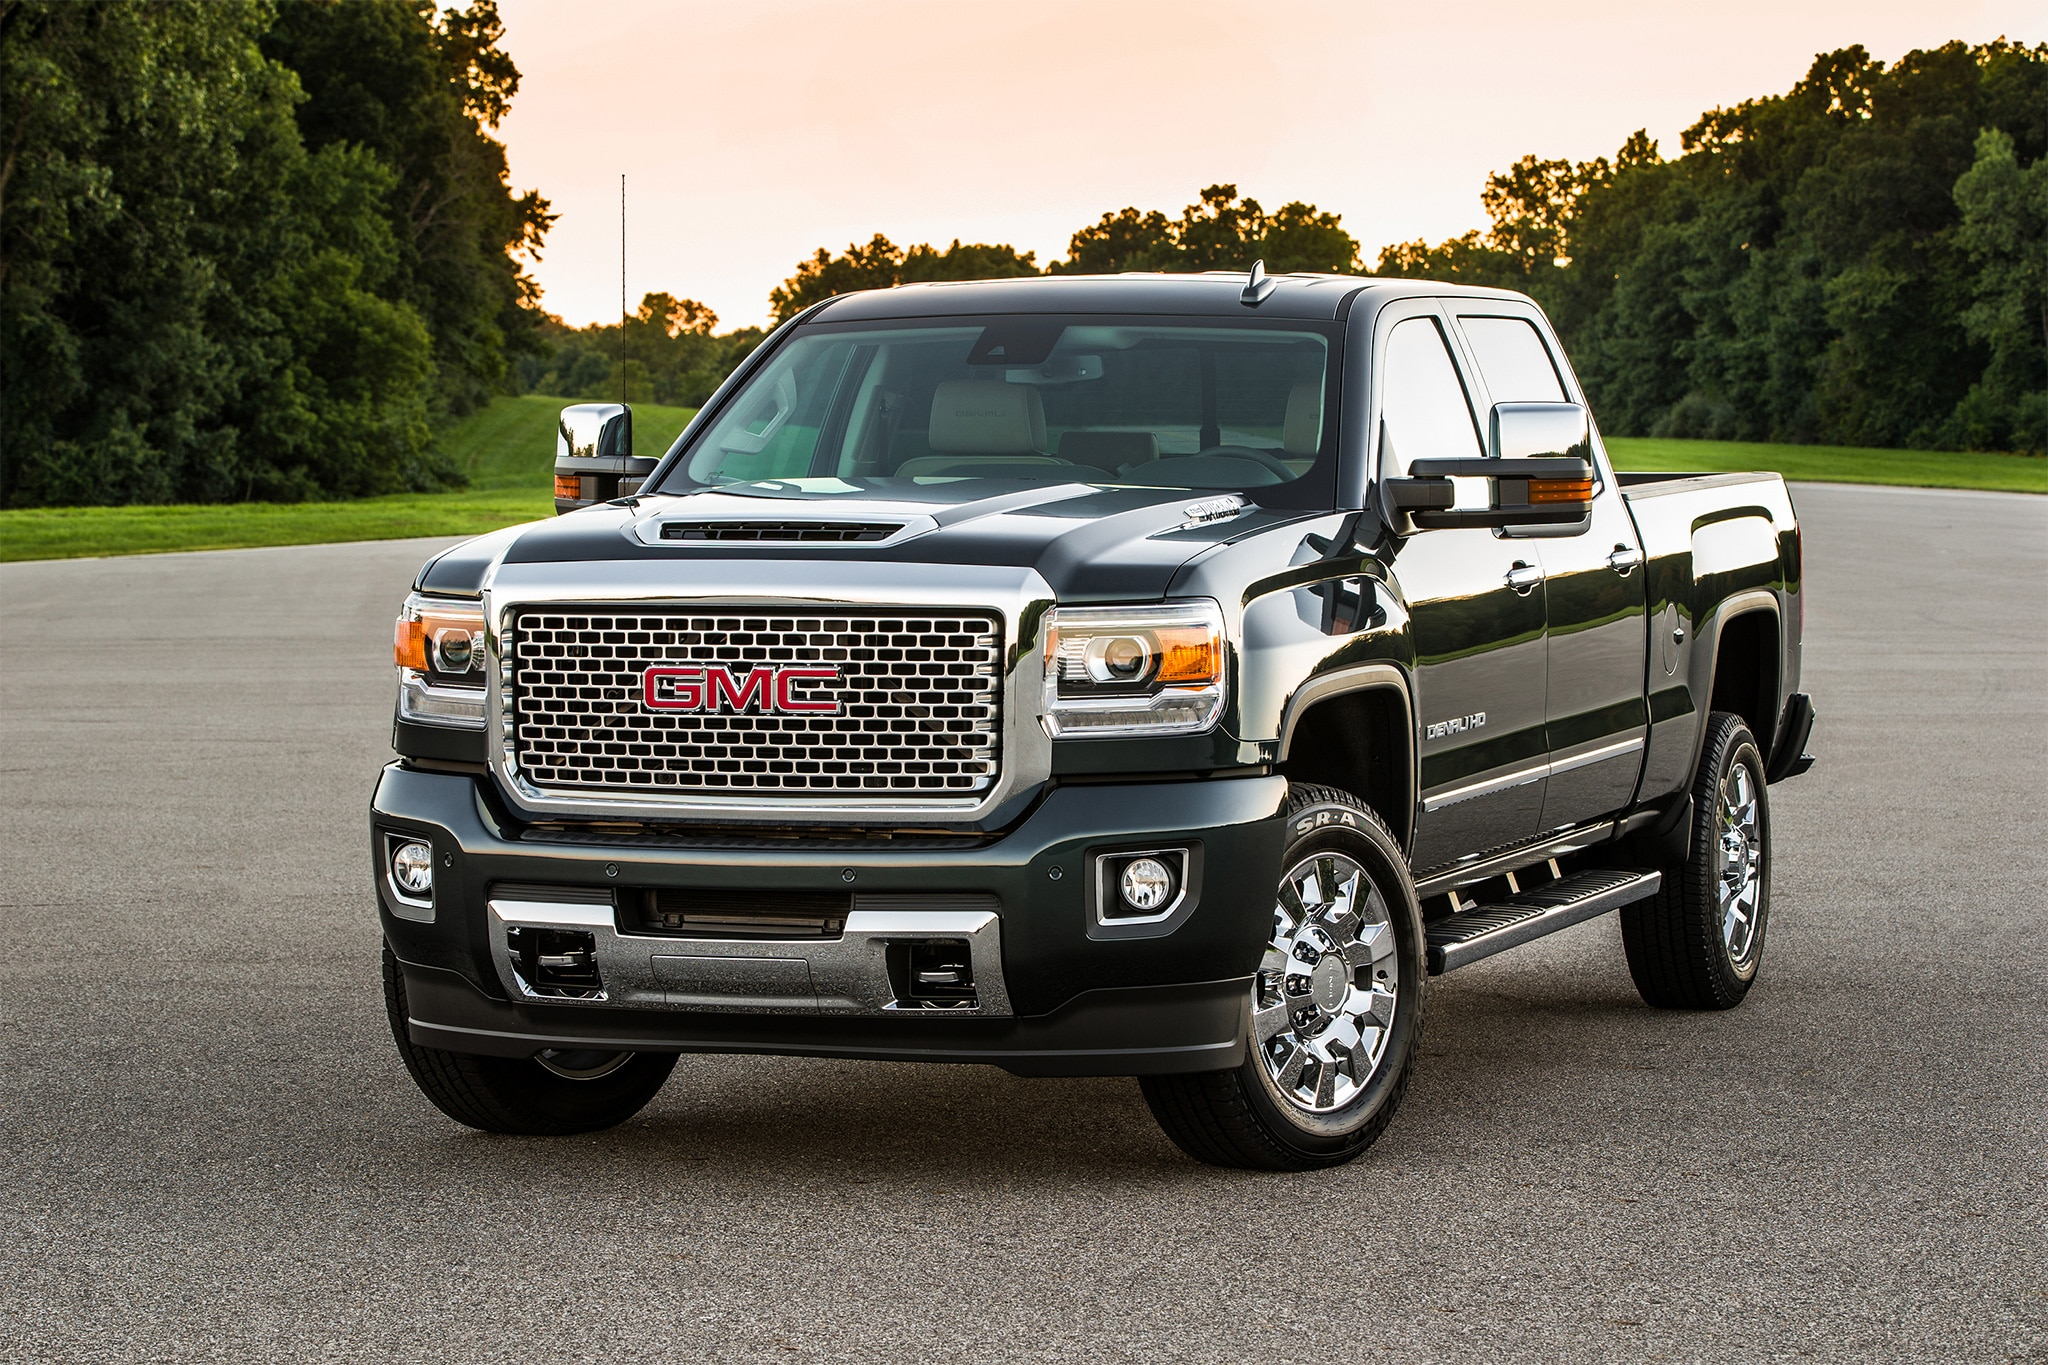 2017 Gmc Sierra 2500hd Crew Cab >> 2017 GMC Sierra HD All Terrain X Brings High Torque to the Trails | Automobile Magazine